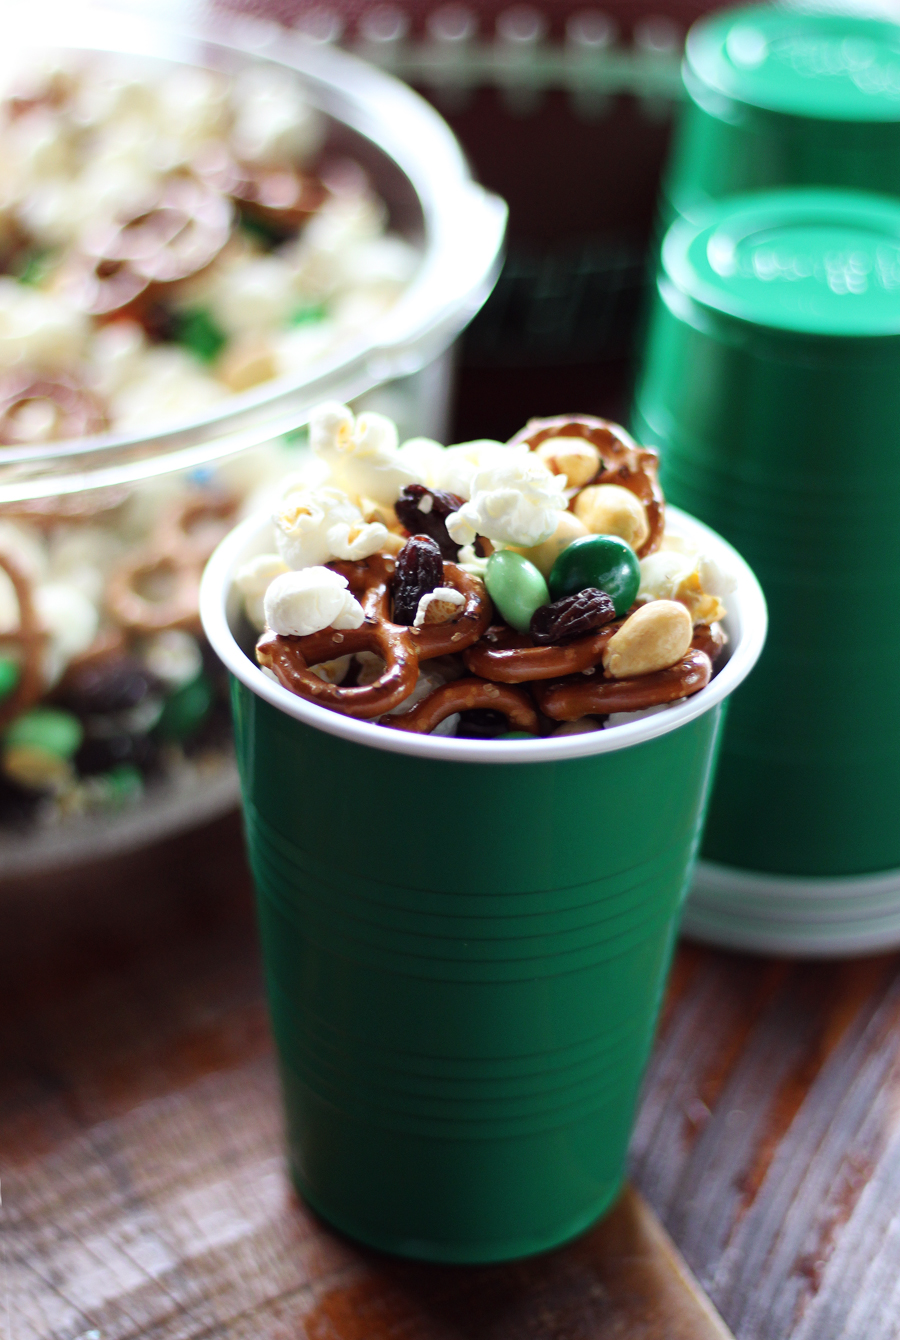 Pick team colors or stick with the basic green and brown to customize your gameday party mix.